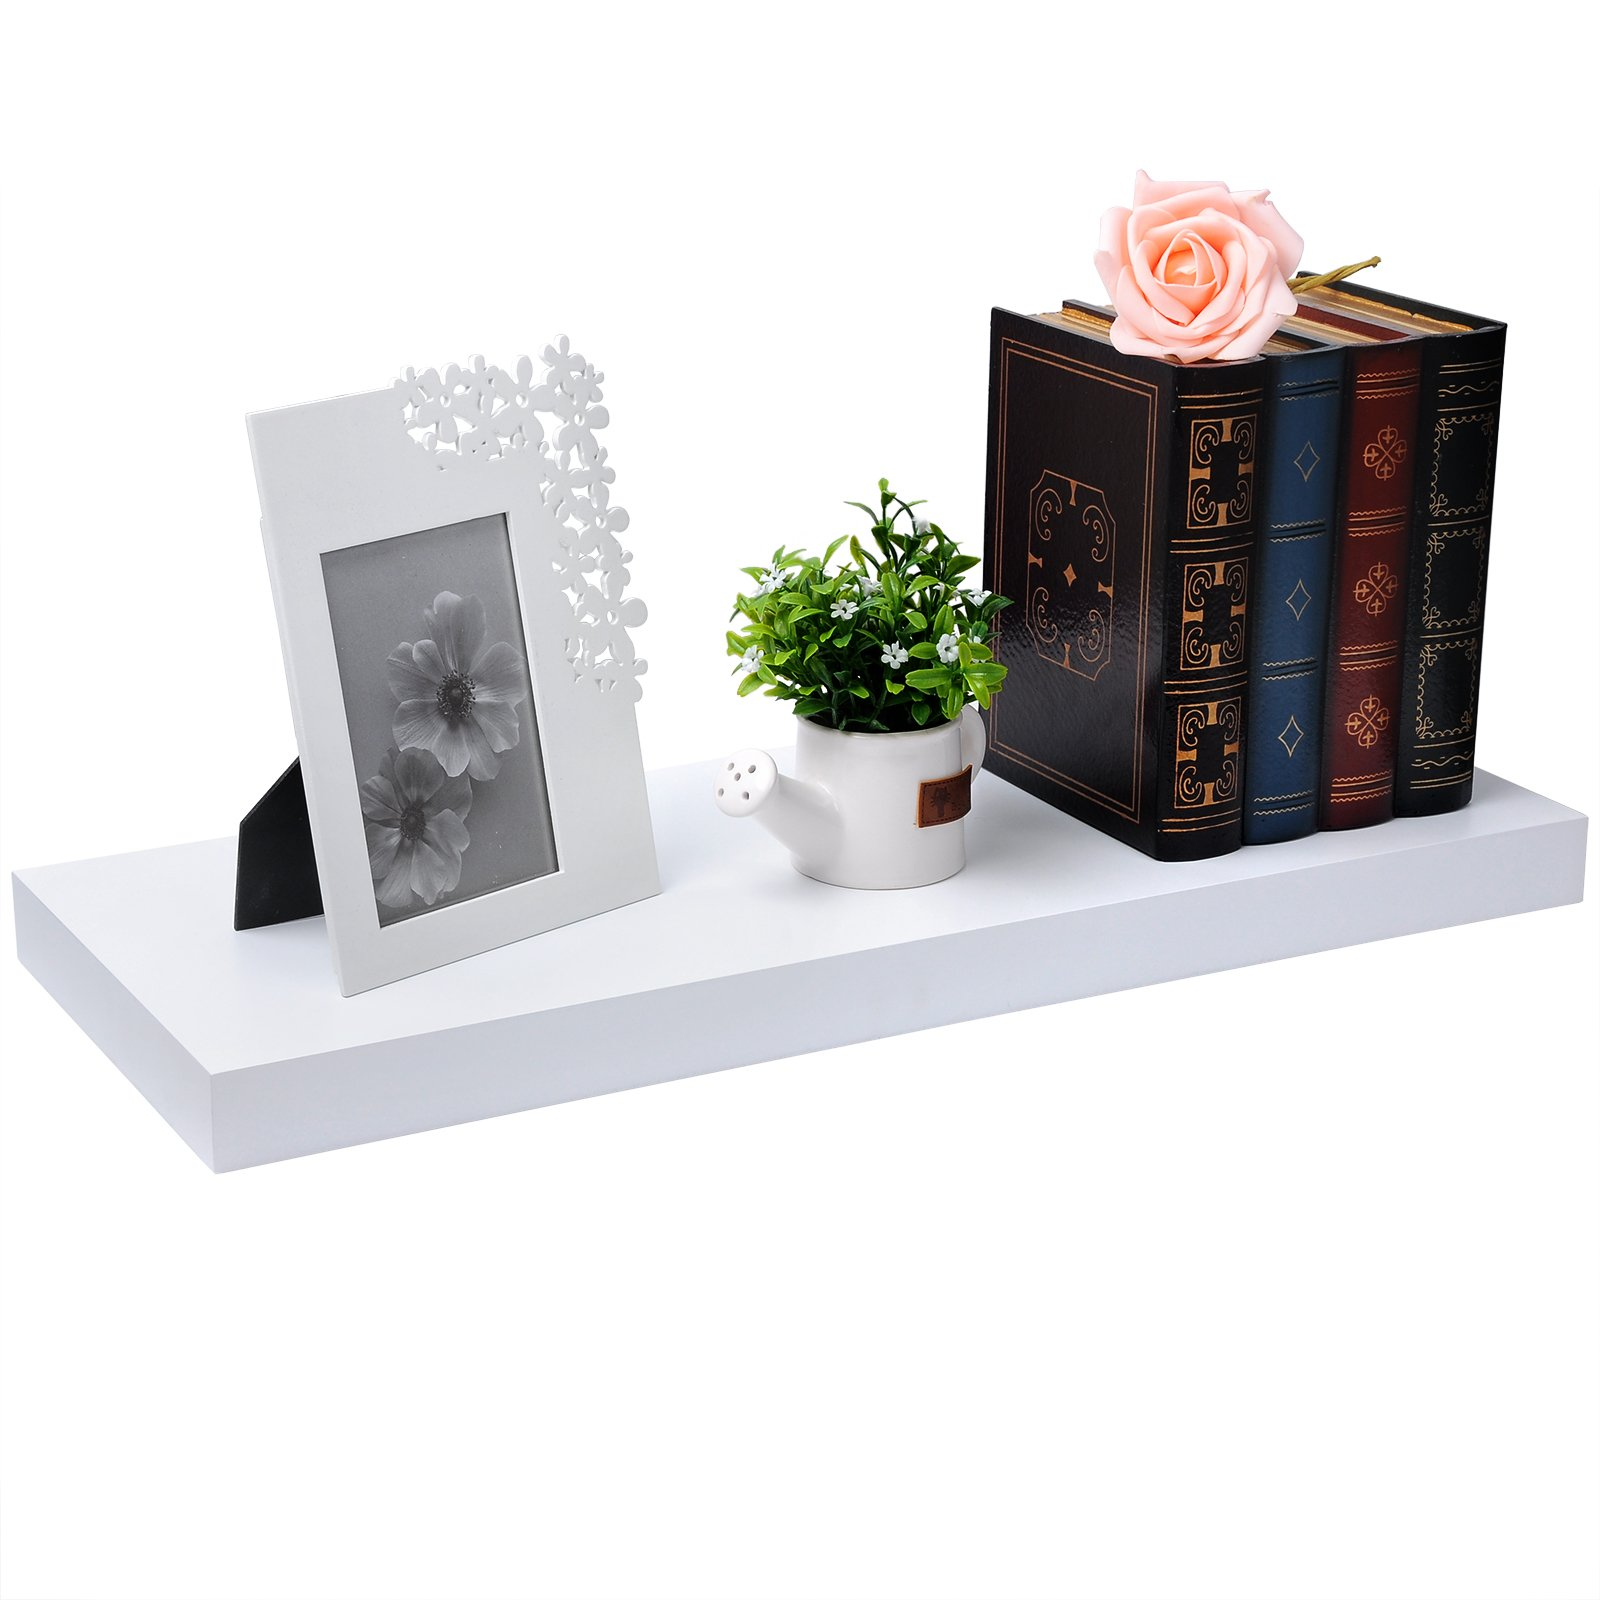 WOLTU Set of 2 Floating Wall Shelves MDF Wall Mount Wood Ledge Display and Organizer Rack with Hidden Brackets,23.62'' Long, White, WS03whiS60-2